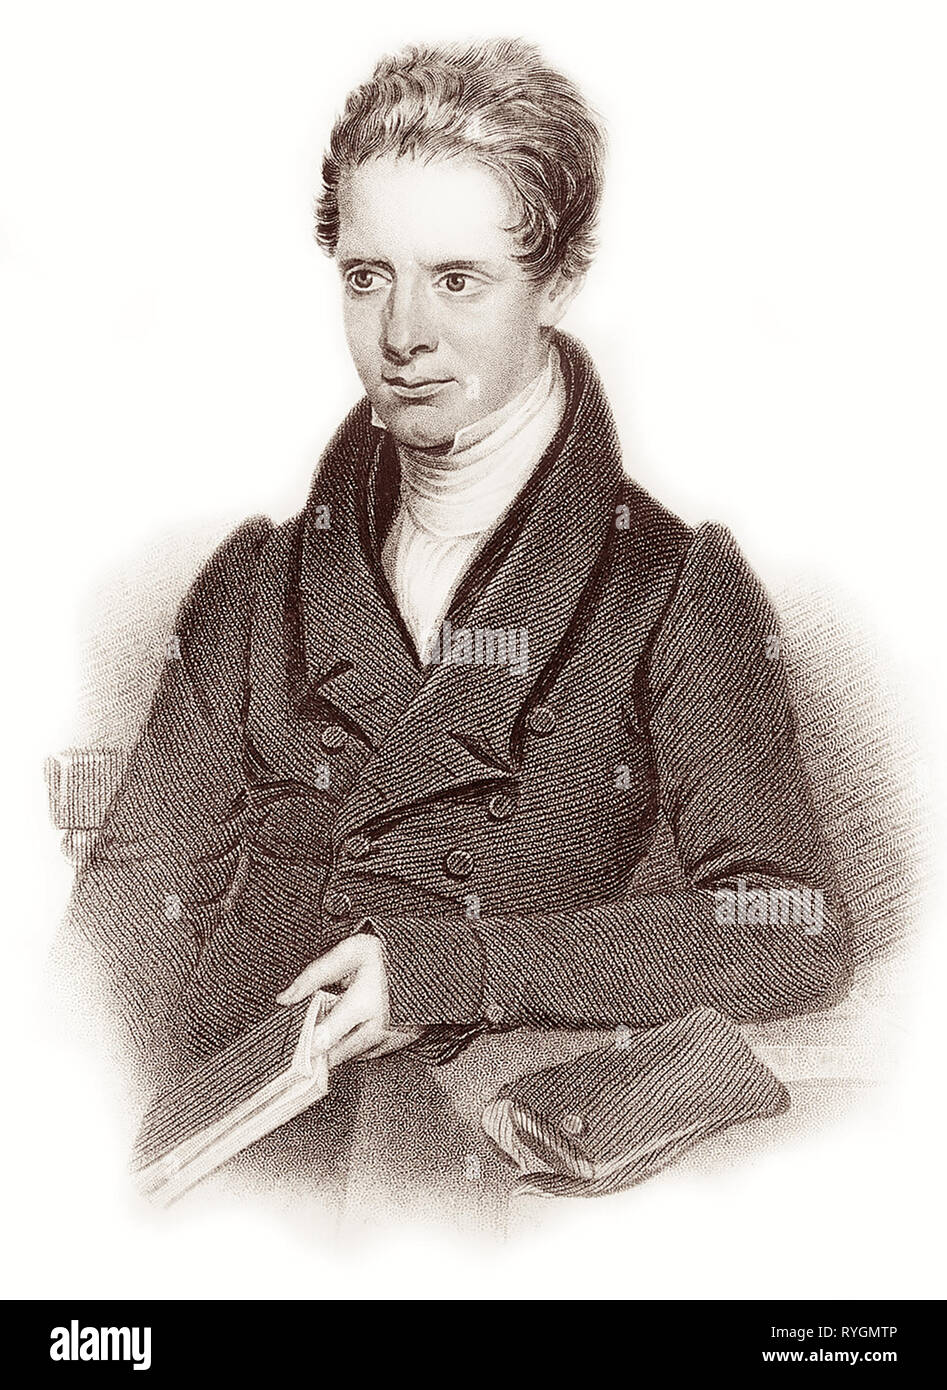 Samuel Dyer (1804-1843) of the London Missionary Society was a pioneering British Protestant Christian missionary to China who worked among the Chinese in Malaysia. Samuel's fourth child (of five), Maria Jane Dyer, would later become the wife of Hudson Taylor, founder of China Inland Mission. - Stock Image